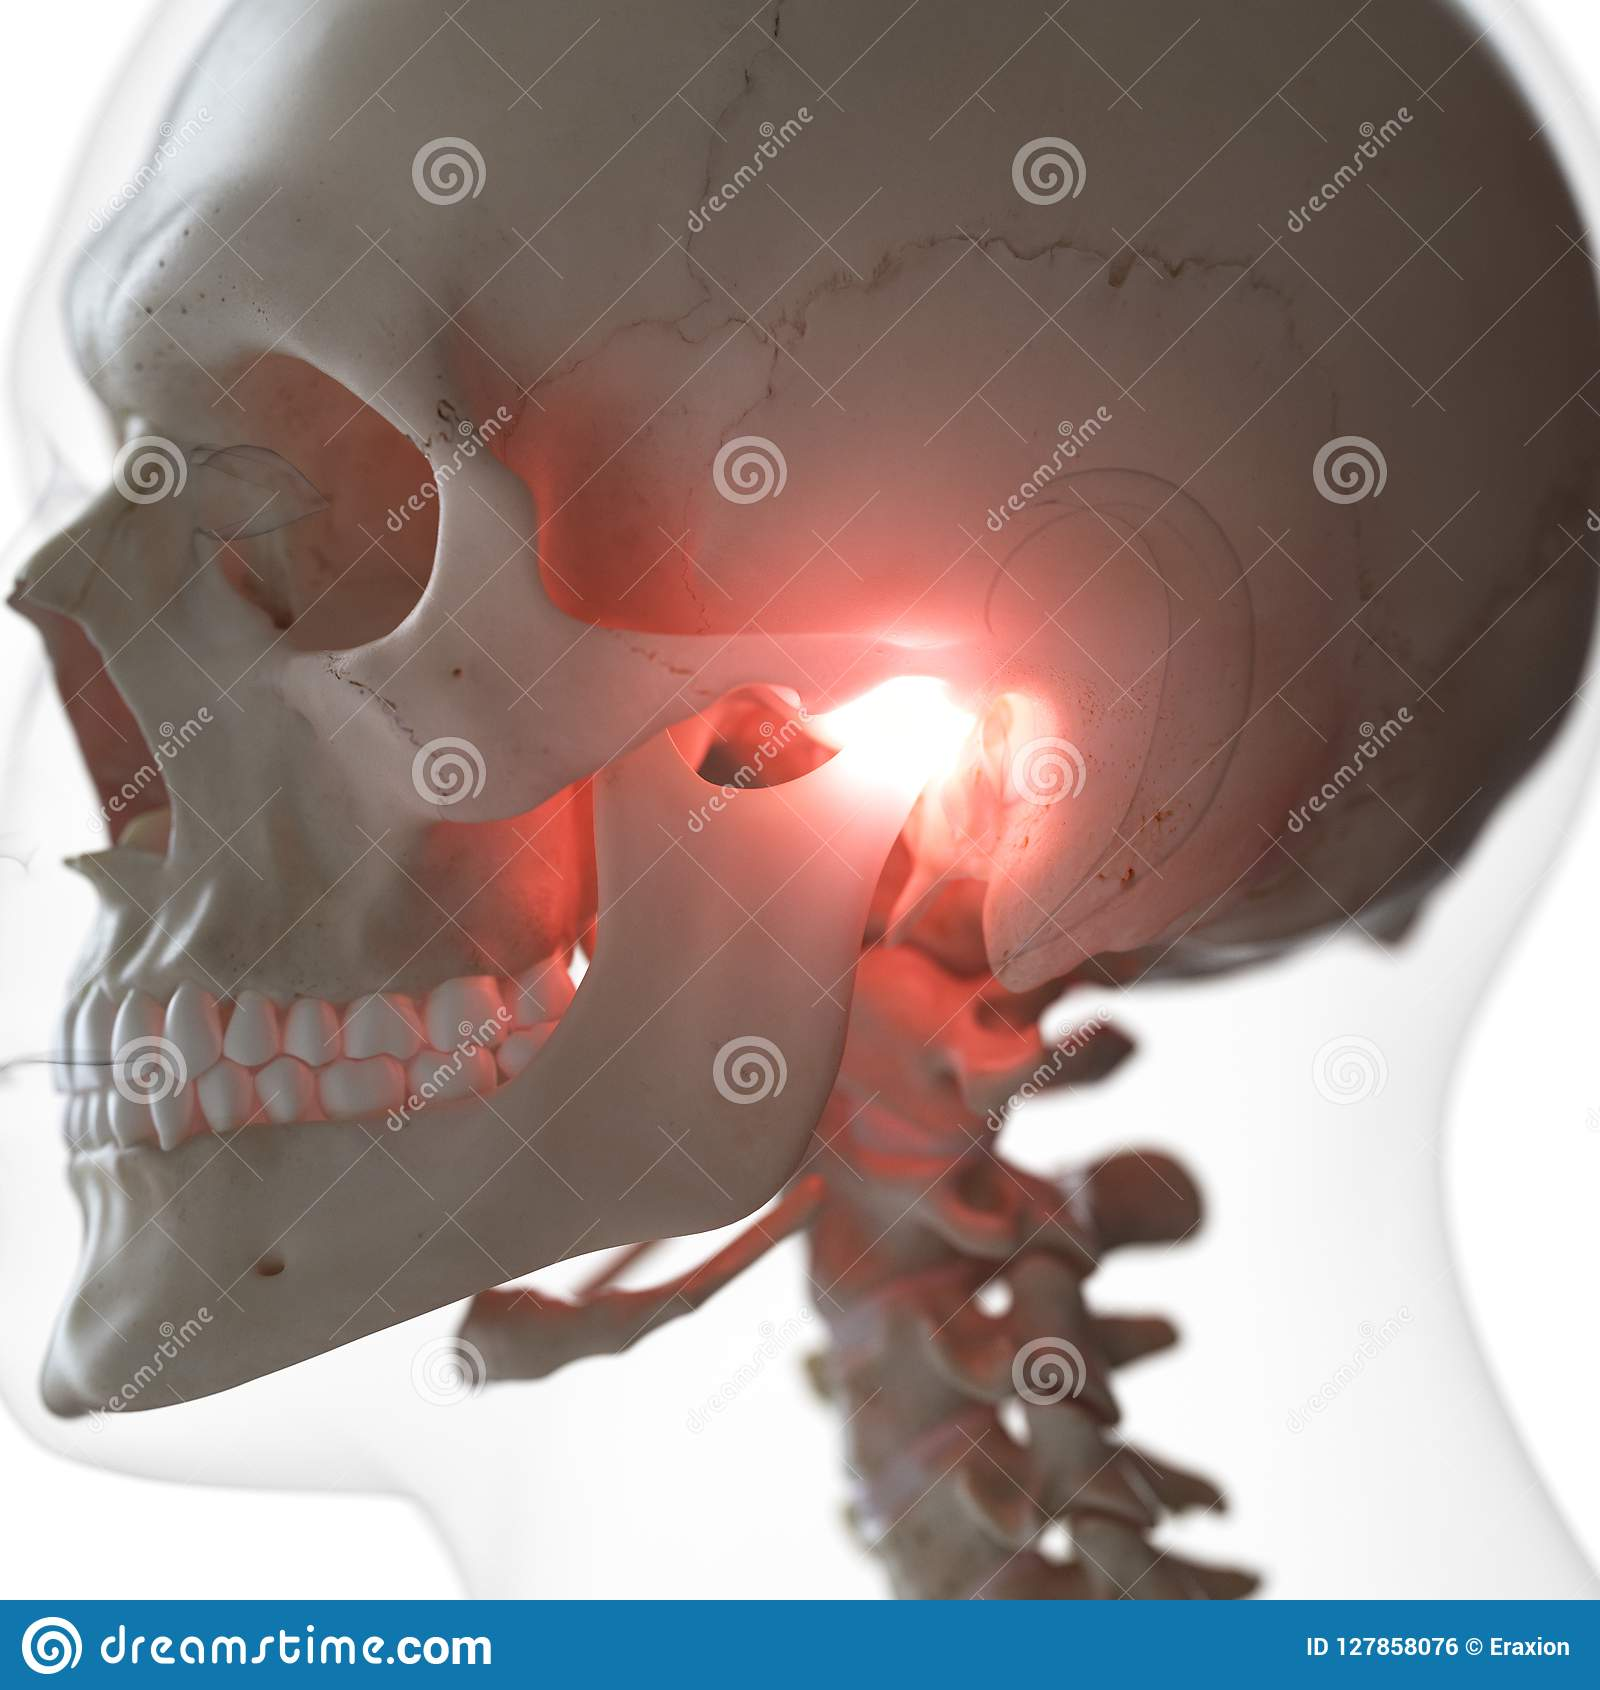 hight resolution of 3d rendered medically accurate illustration of a painful temporomandibular joint